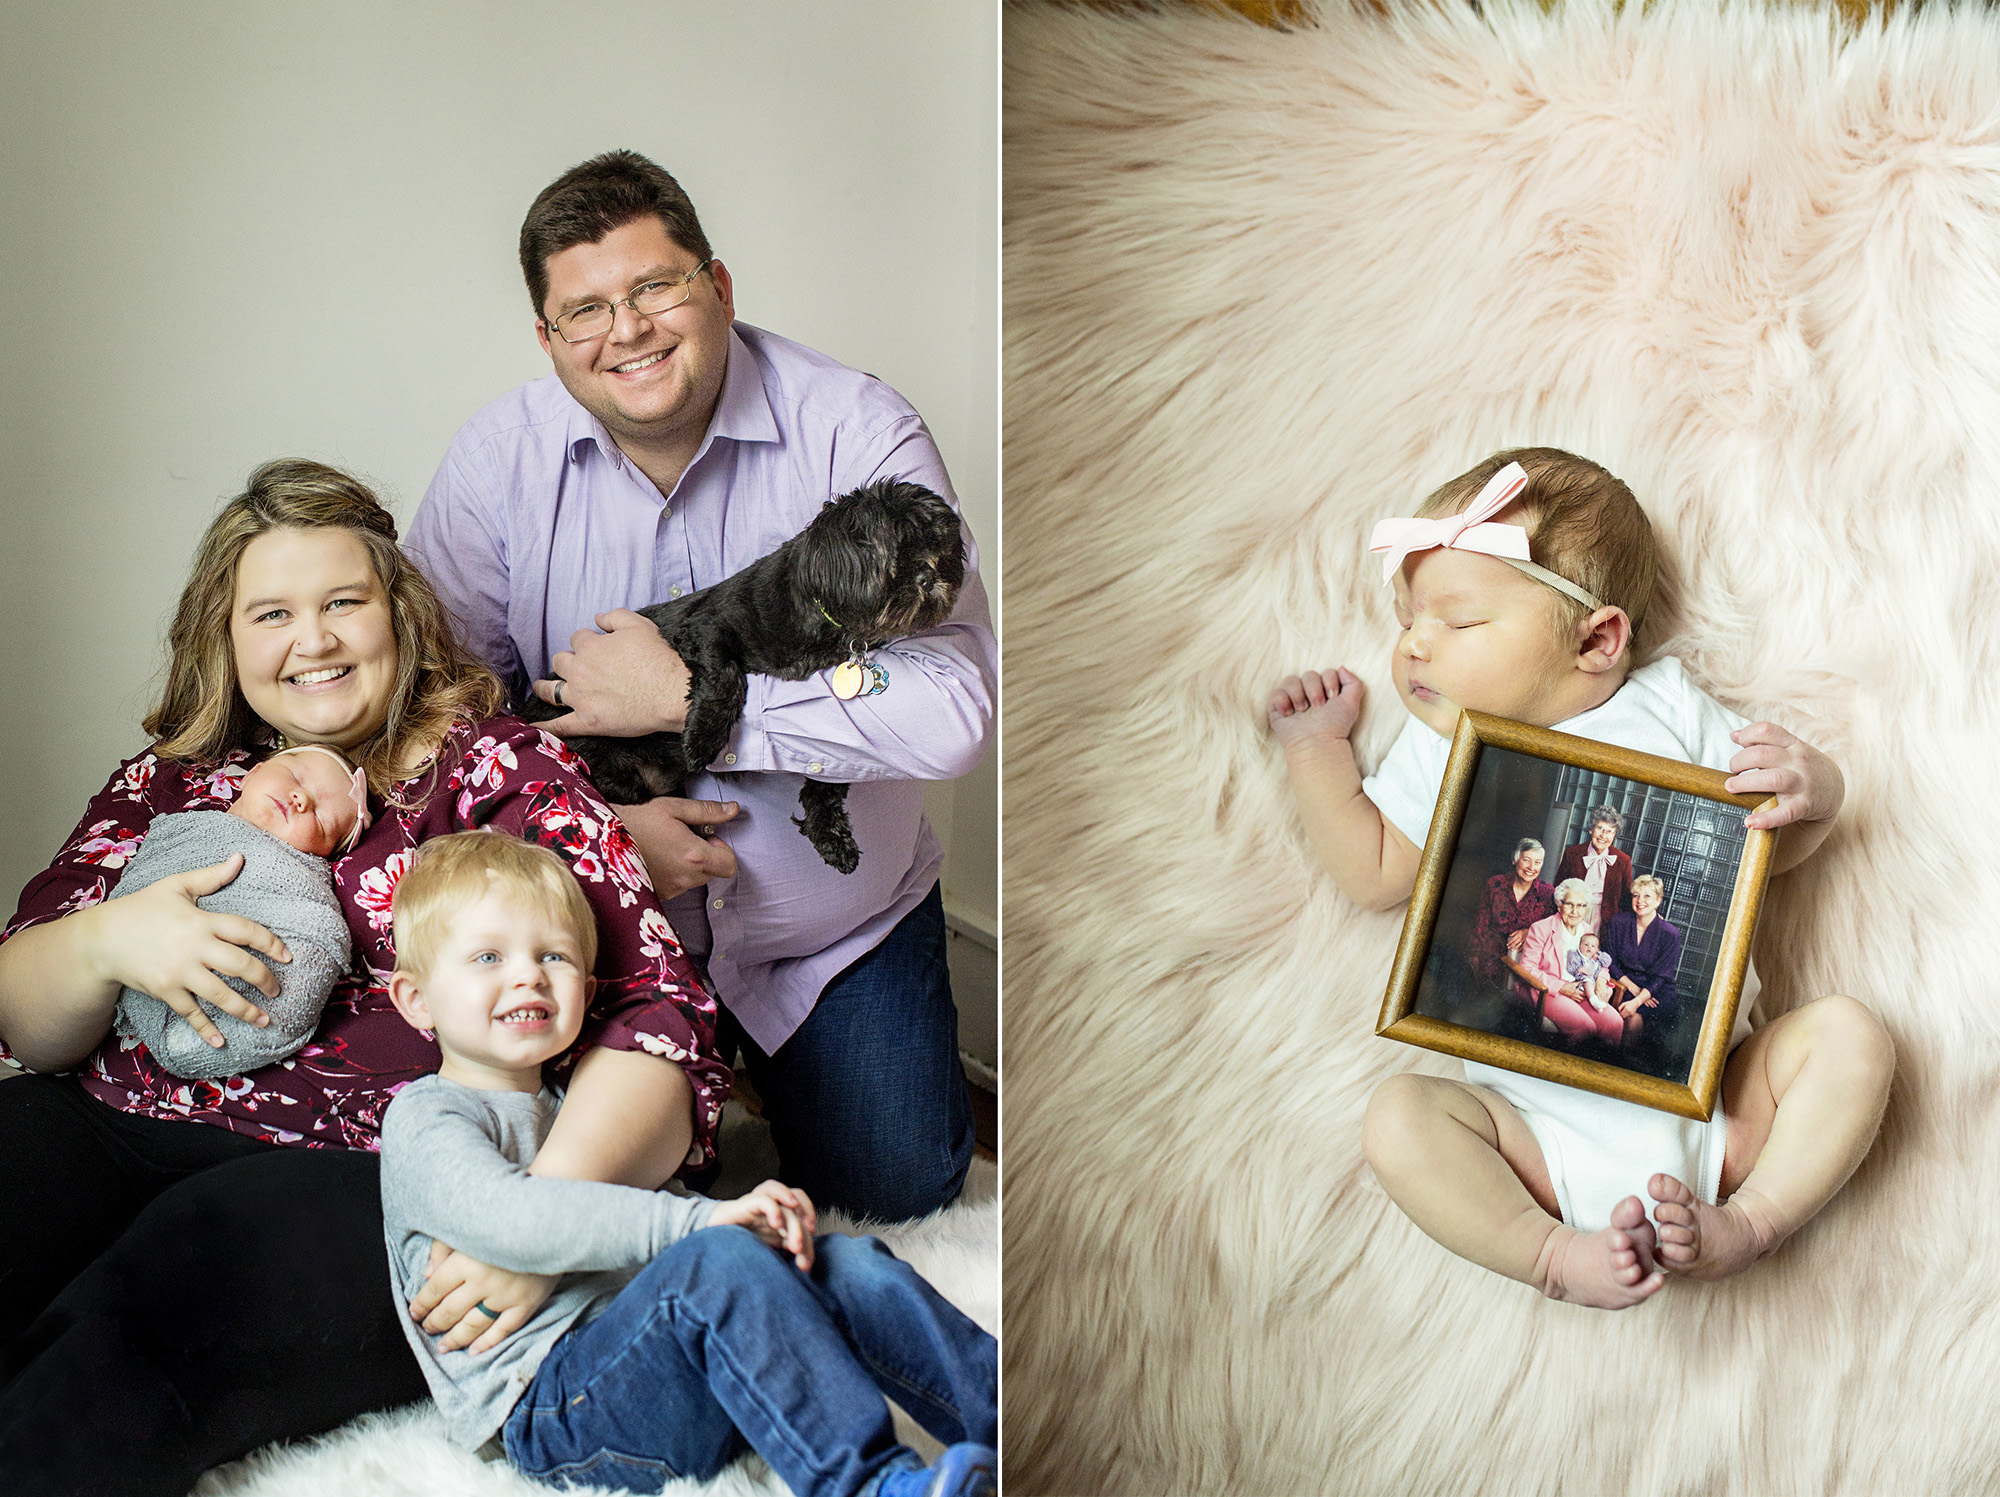 Seriously_Sabrina_Photography_Lexington_Kentucky_Studio_Family_Newborn_Portraits_Wood_2.jpg